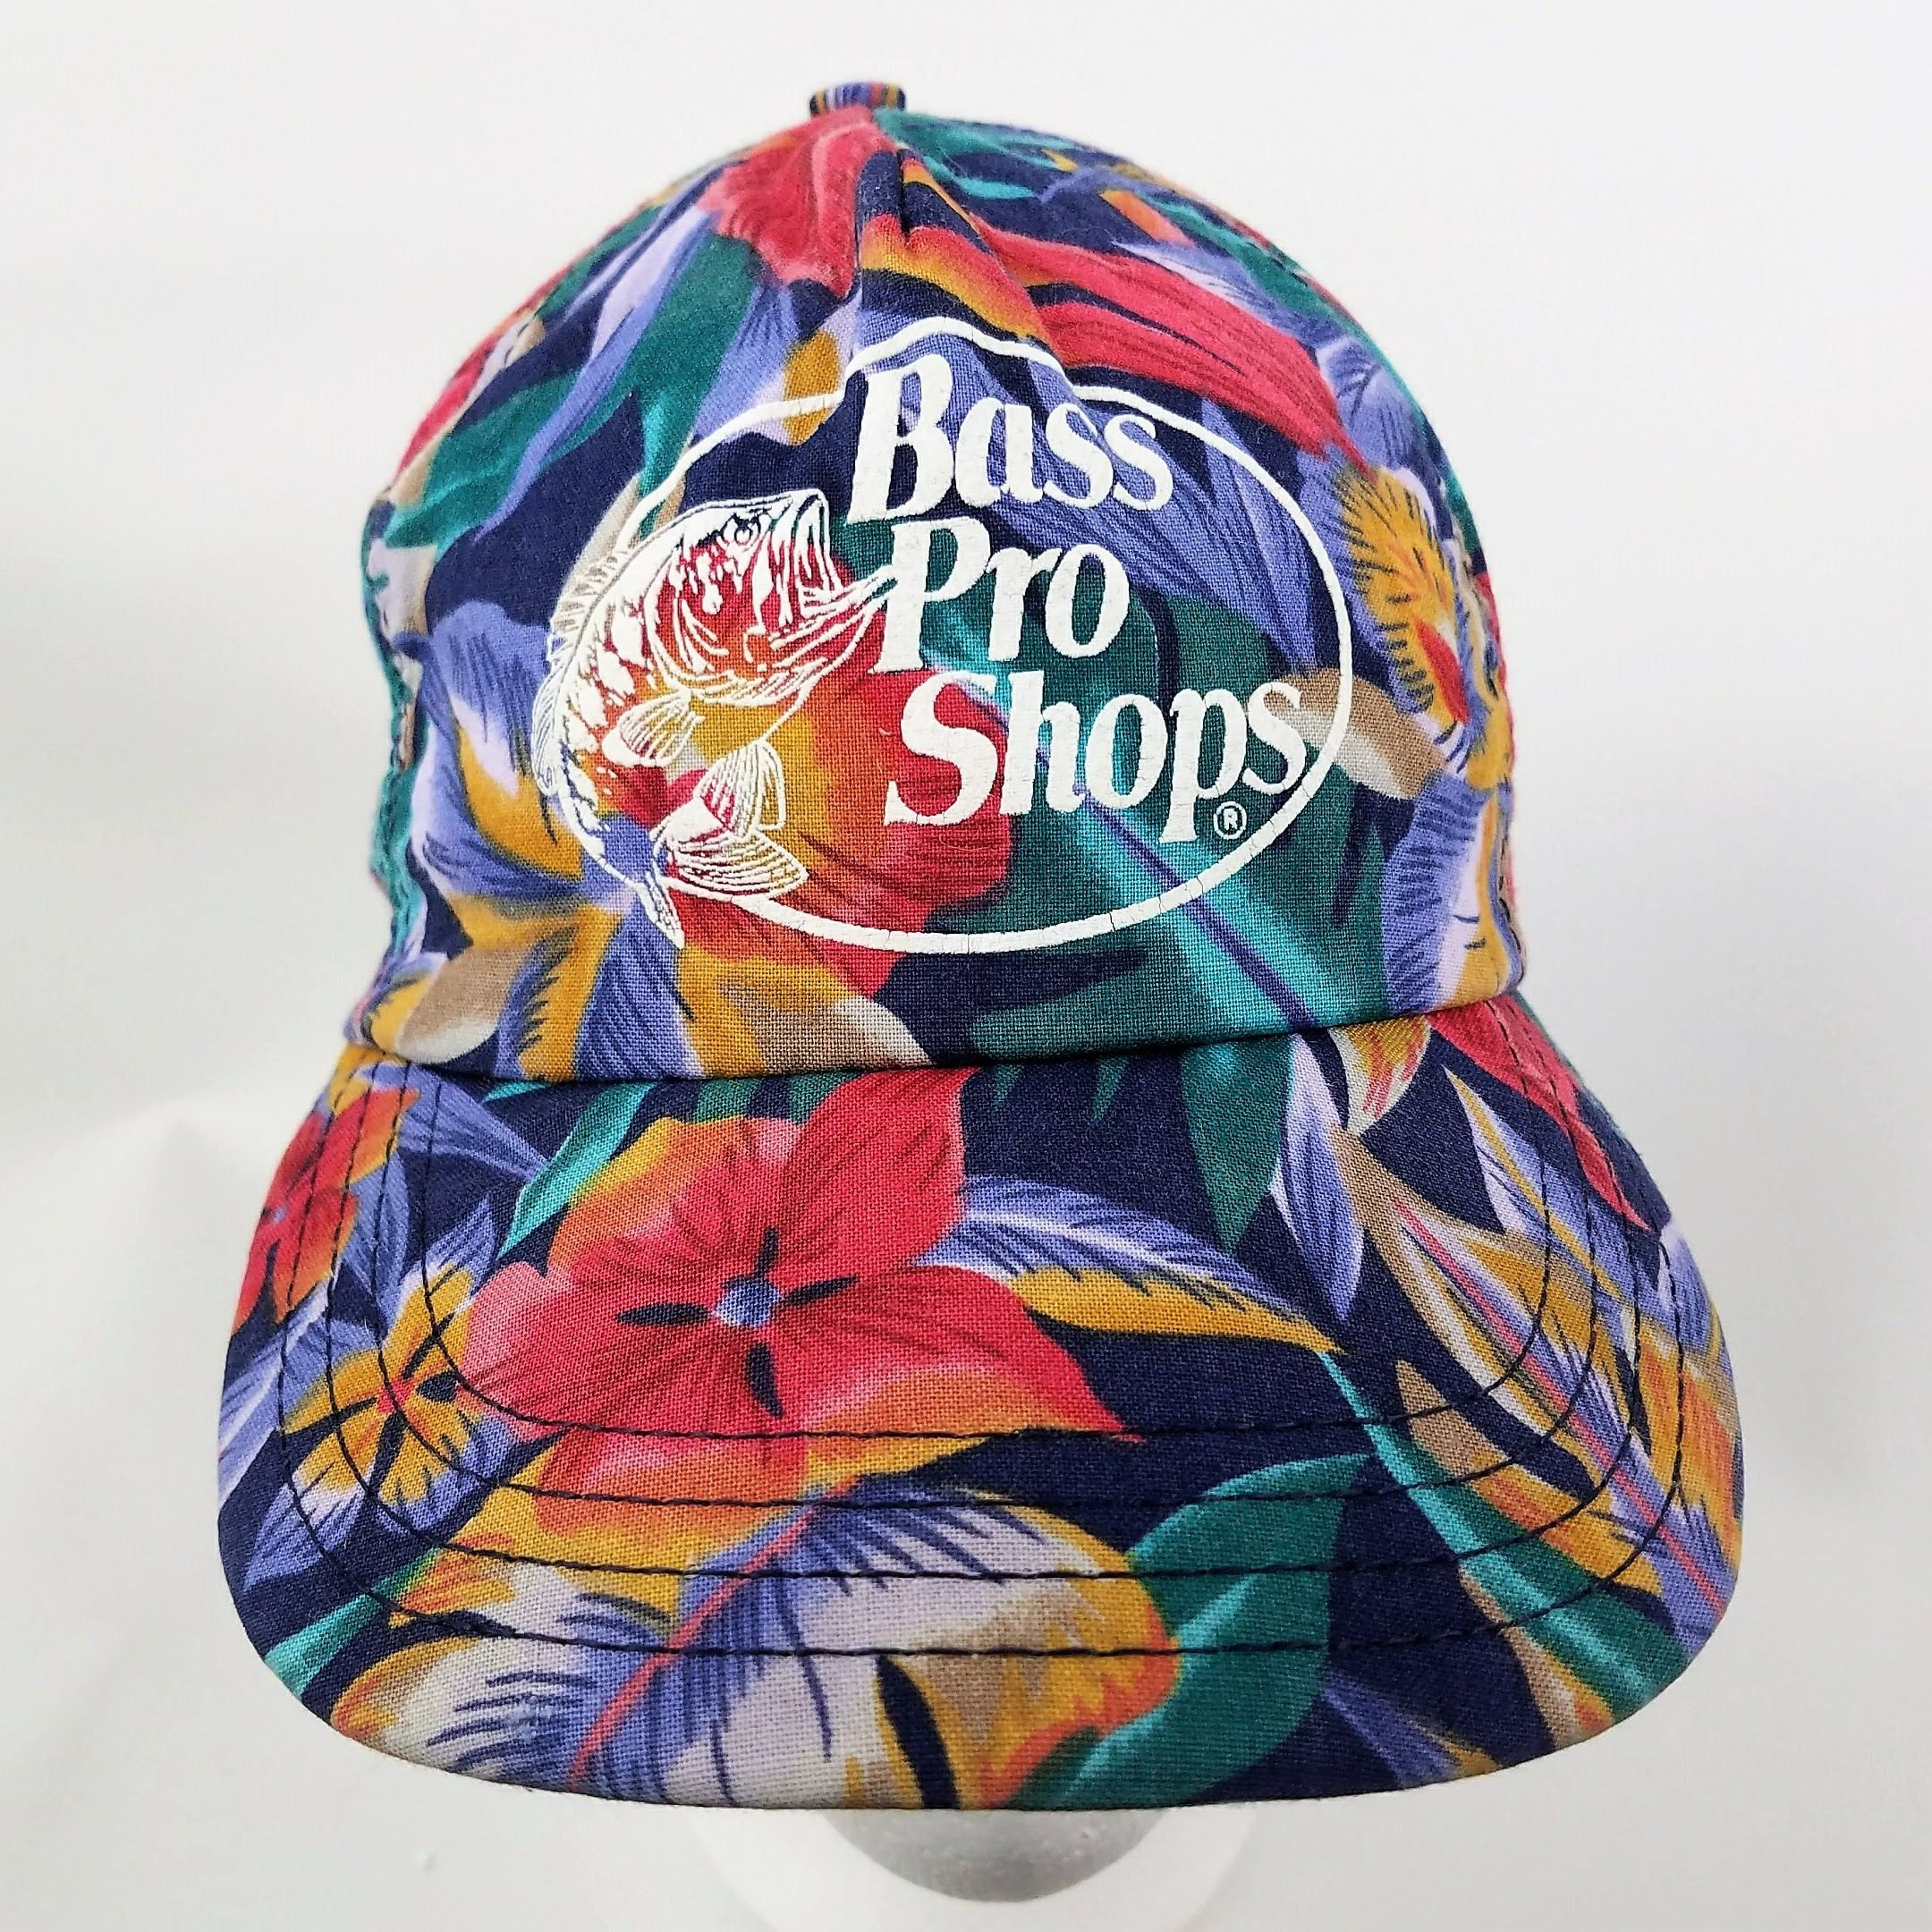 Bass Pro Shops Snapback Hat Ball Cap Vtg Floral Hawaiian Tropical 80s Made In The Usa By Trasheewomen On Etsy Bassproshops Vintage Hats Hats Vintage Ball Cap